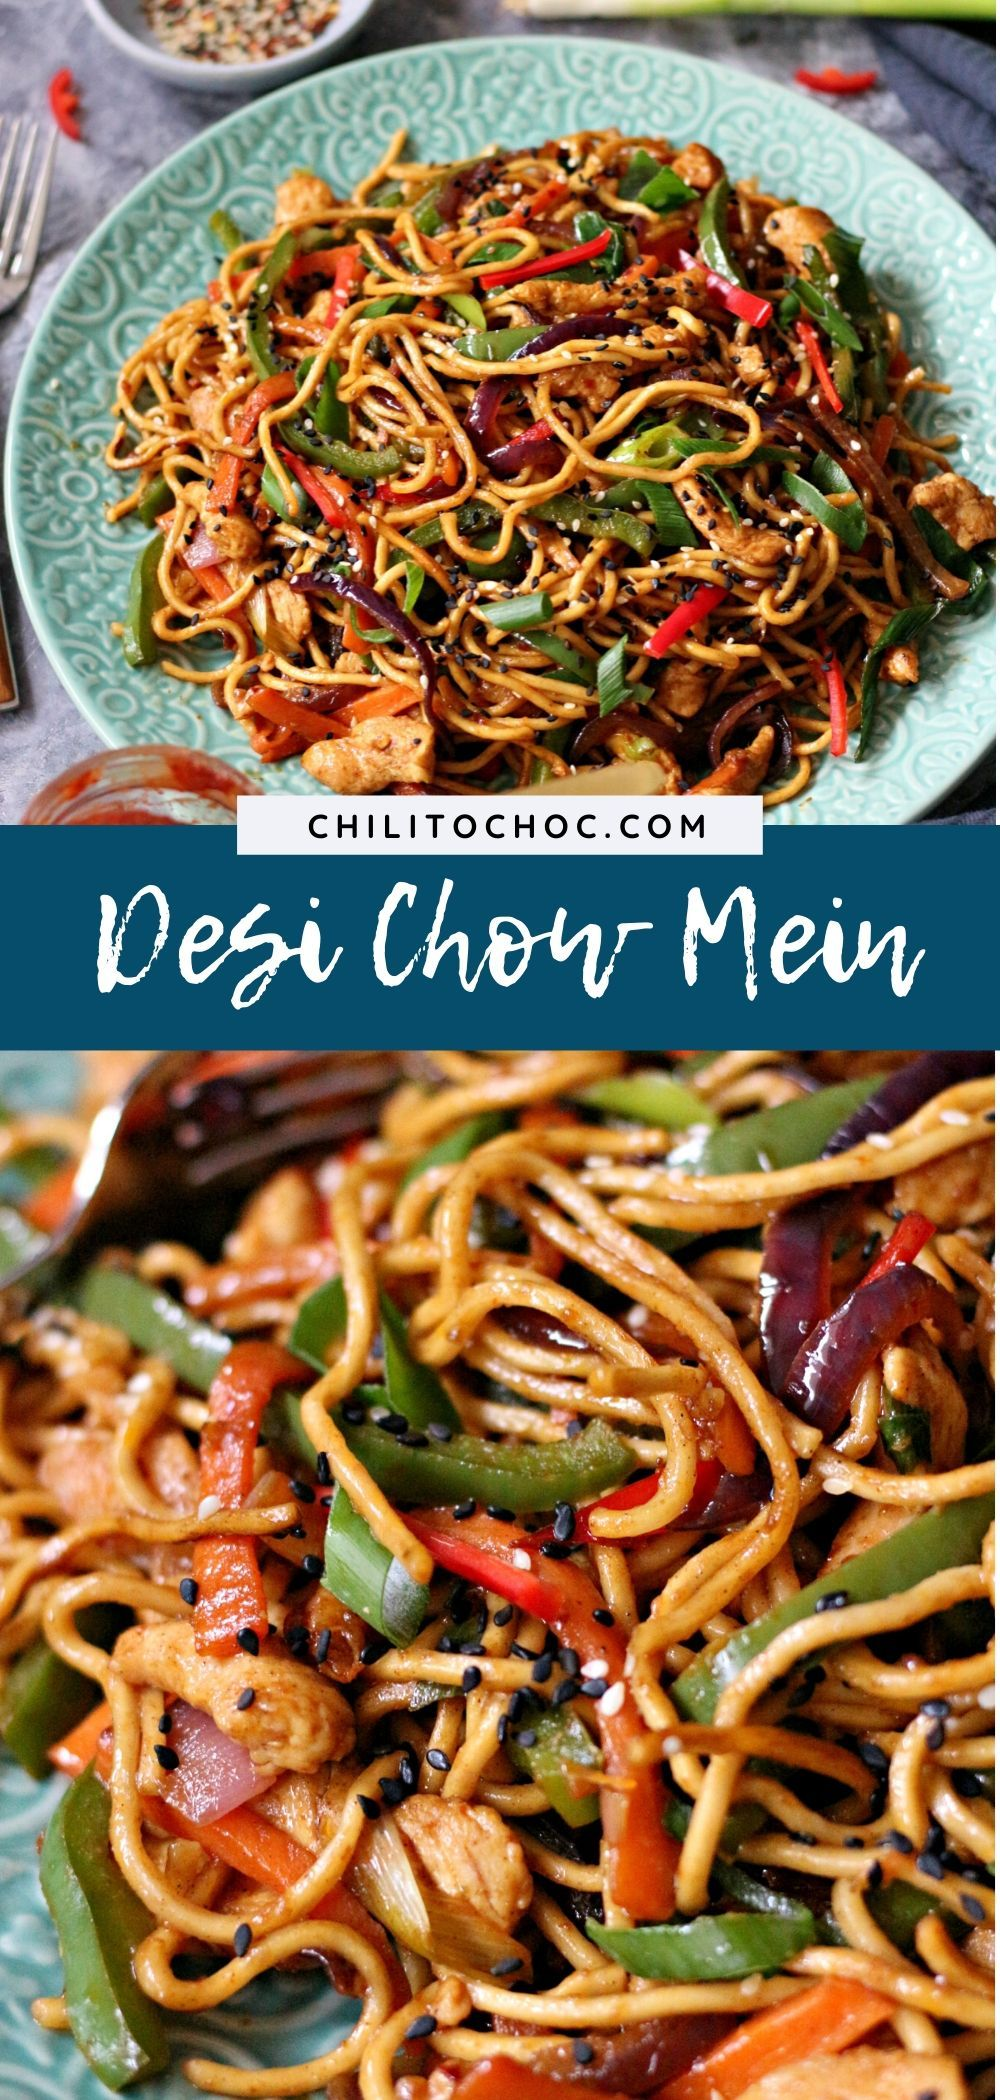 A spin on the classic Chinese Chow Mein, this desi-style Chow Mein is jam-packed with bold flavours and has just the right amount of heat our Pakistani tastebuds love. ------ Recipe on chilitochoc.com ------ #foodphotography #foodstyling #pakistanifoodblogger #indianfood